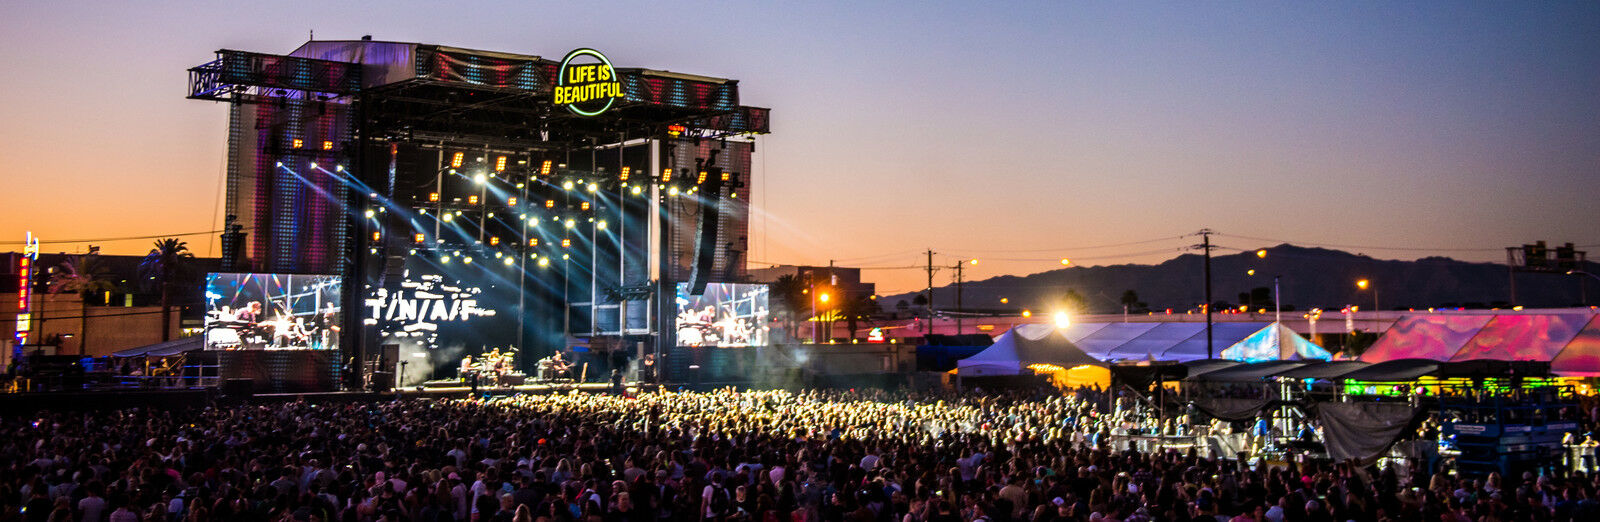 Life Is Beautiful 3 Day Pass with Chance the Rapper, Muse, Gorillaz, Lorde, Blink 182 and more Tickets (September 22-24)